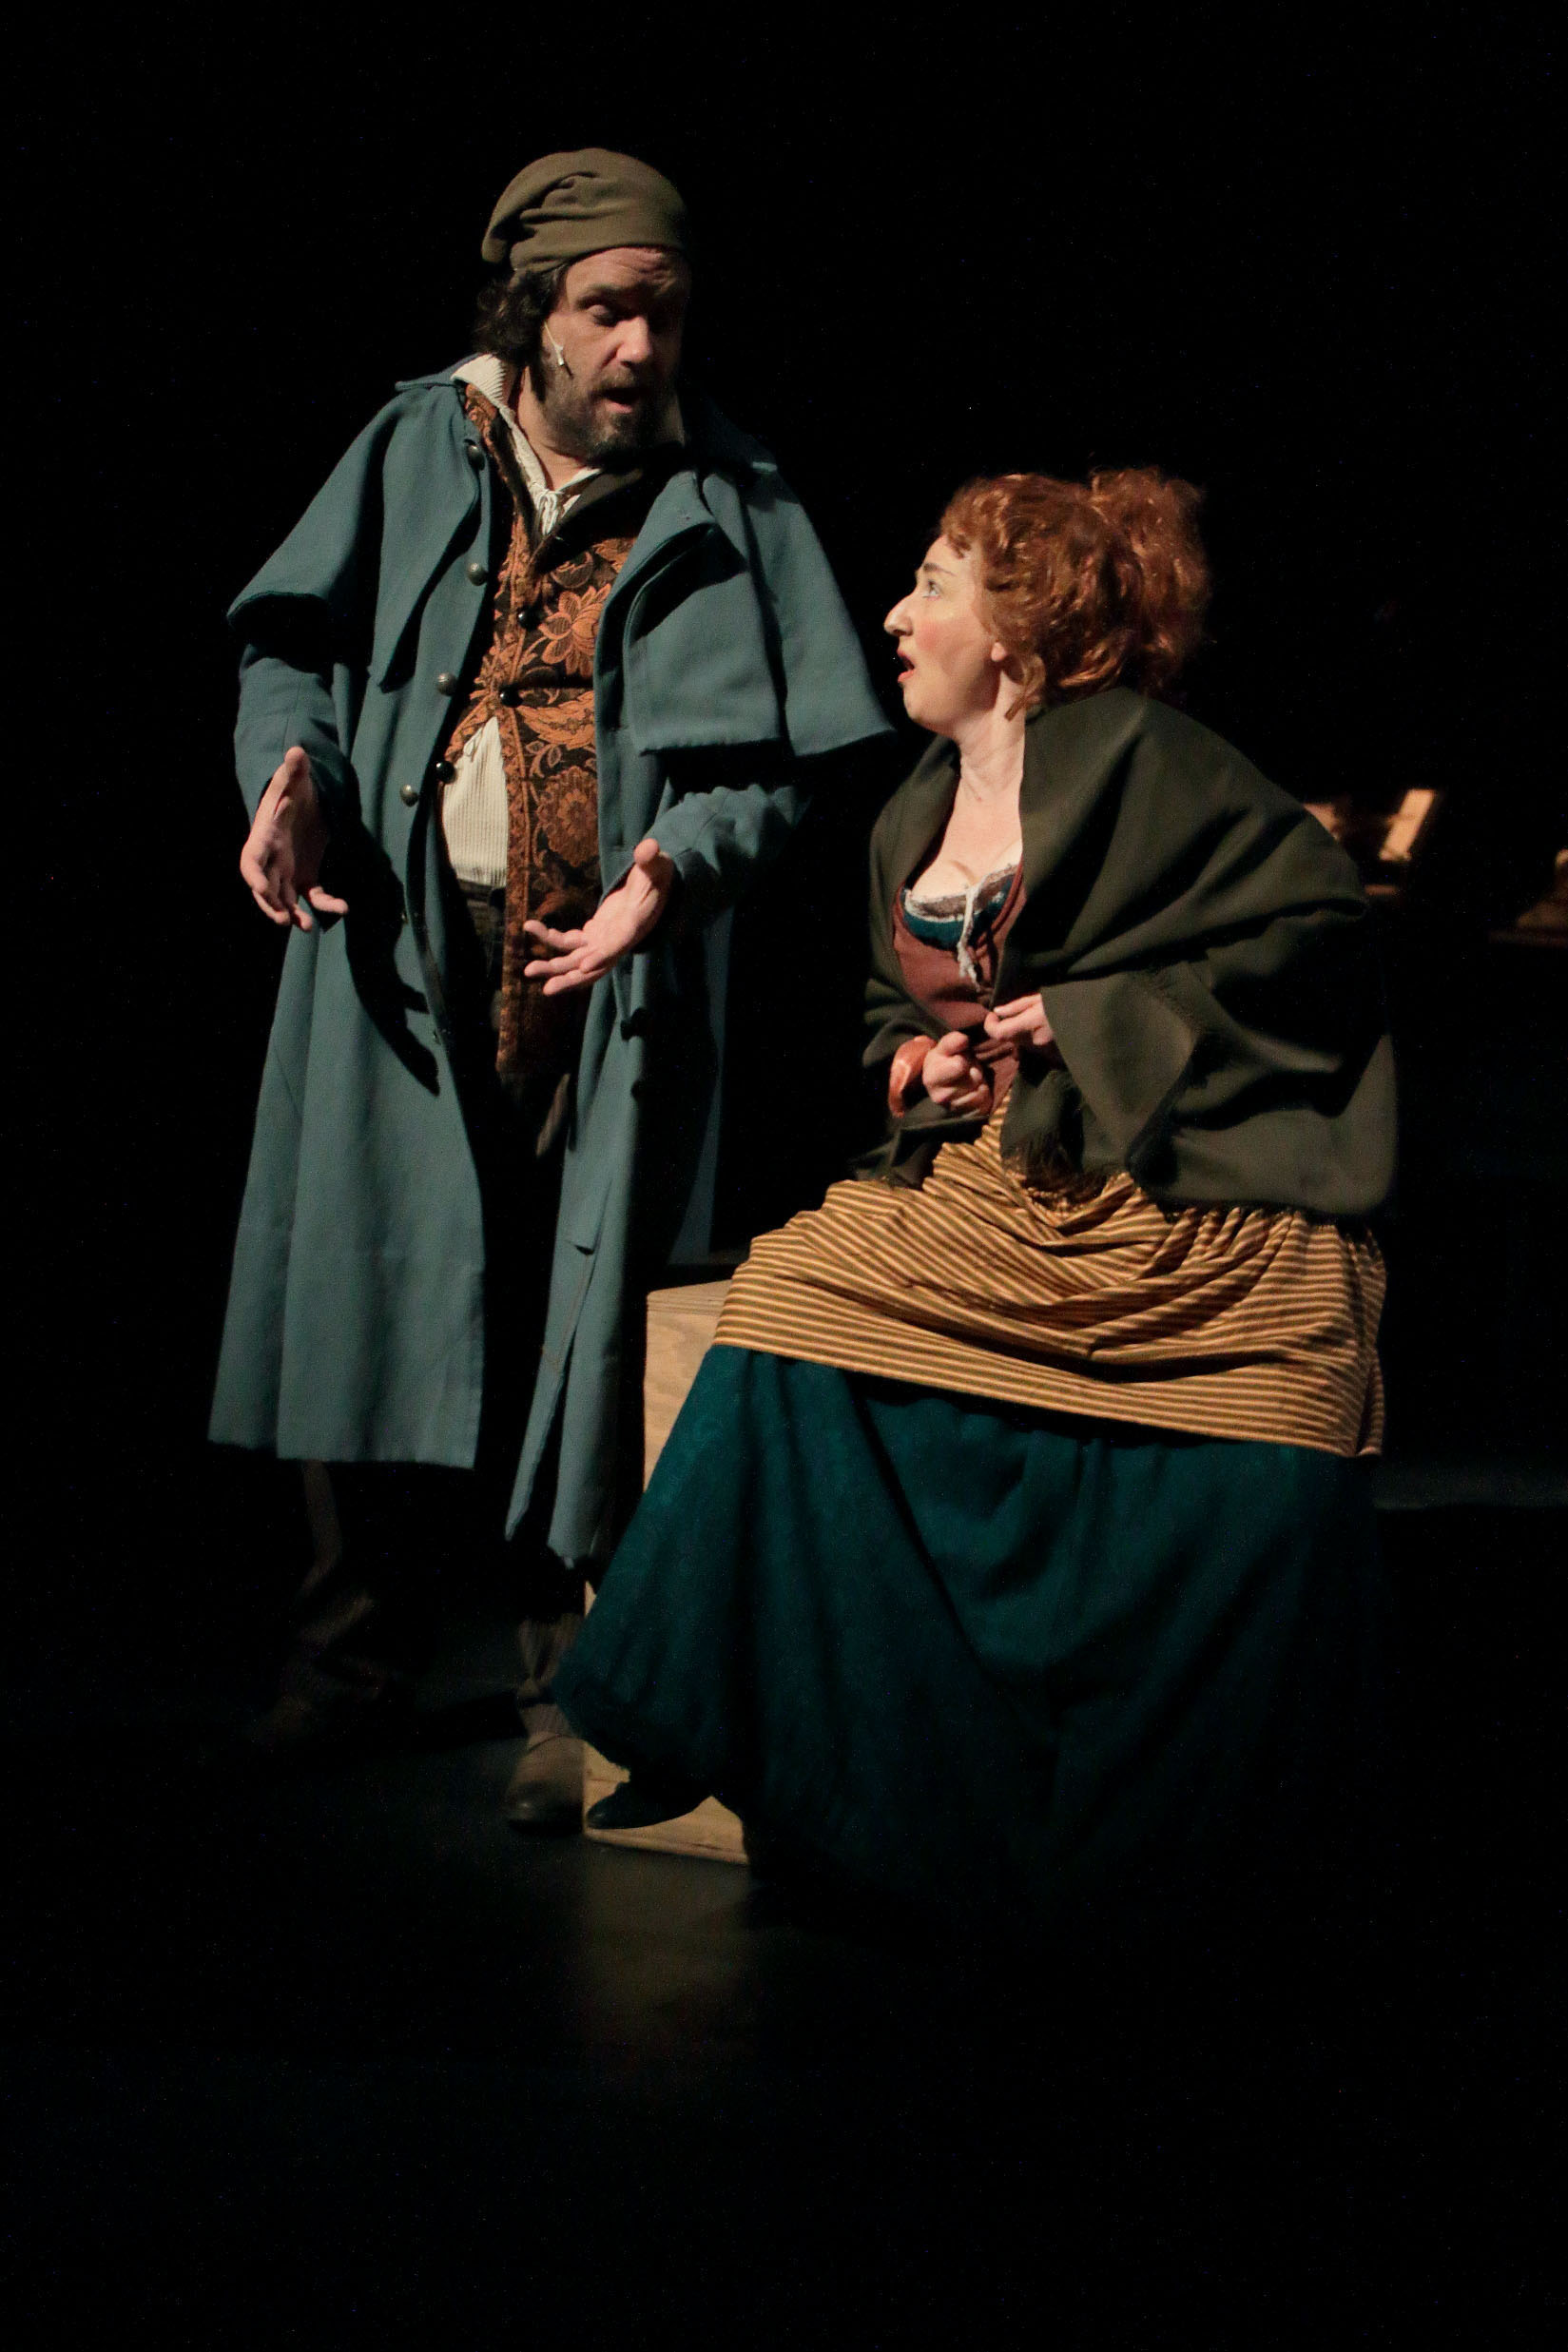 Thenardiers 2 RESIZED.jpg